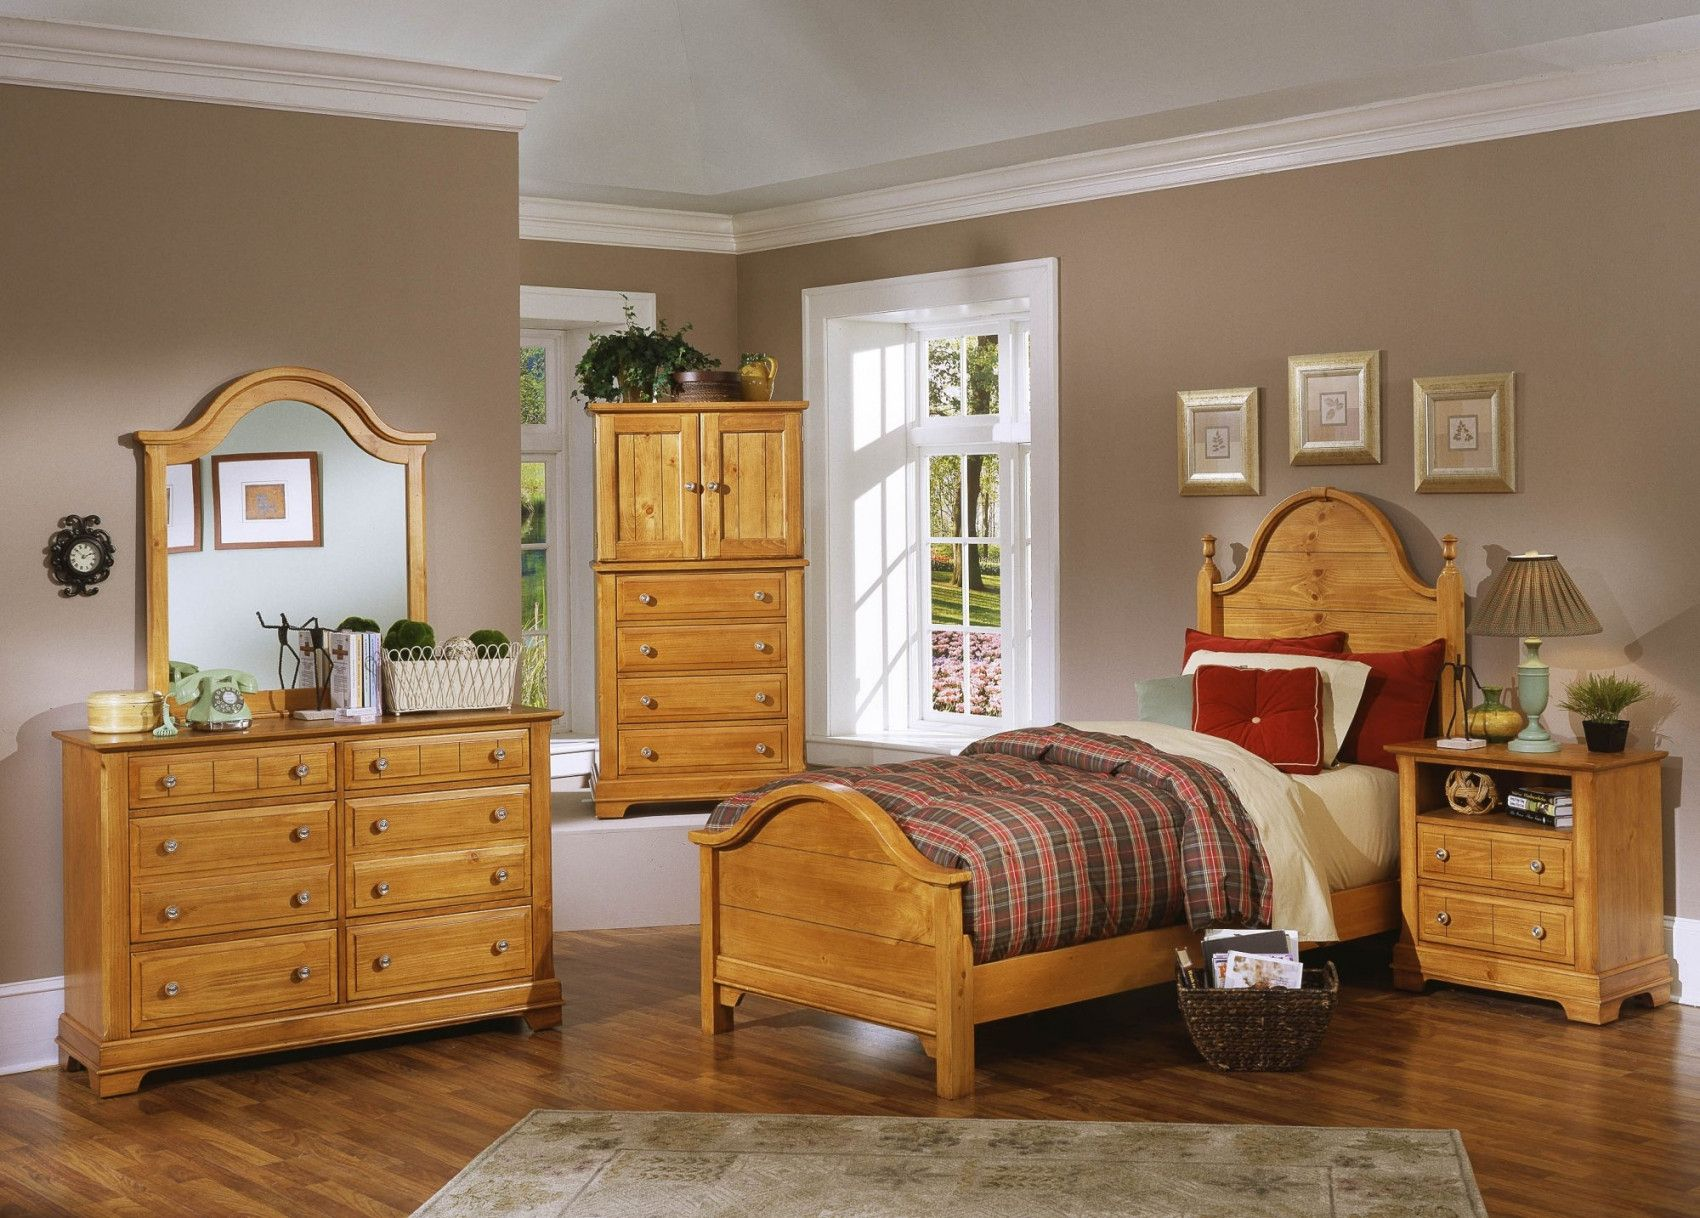 Interior Design Ideas With Pine Furniture Discount Bedroom Furniture Sets Pine Bedroom Furniture Cheap Bedroom Furniture